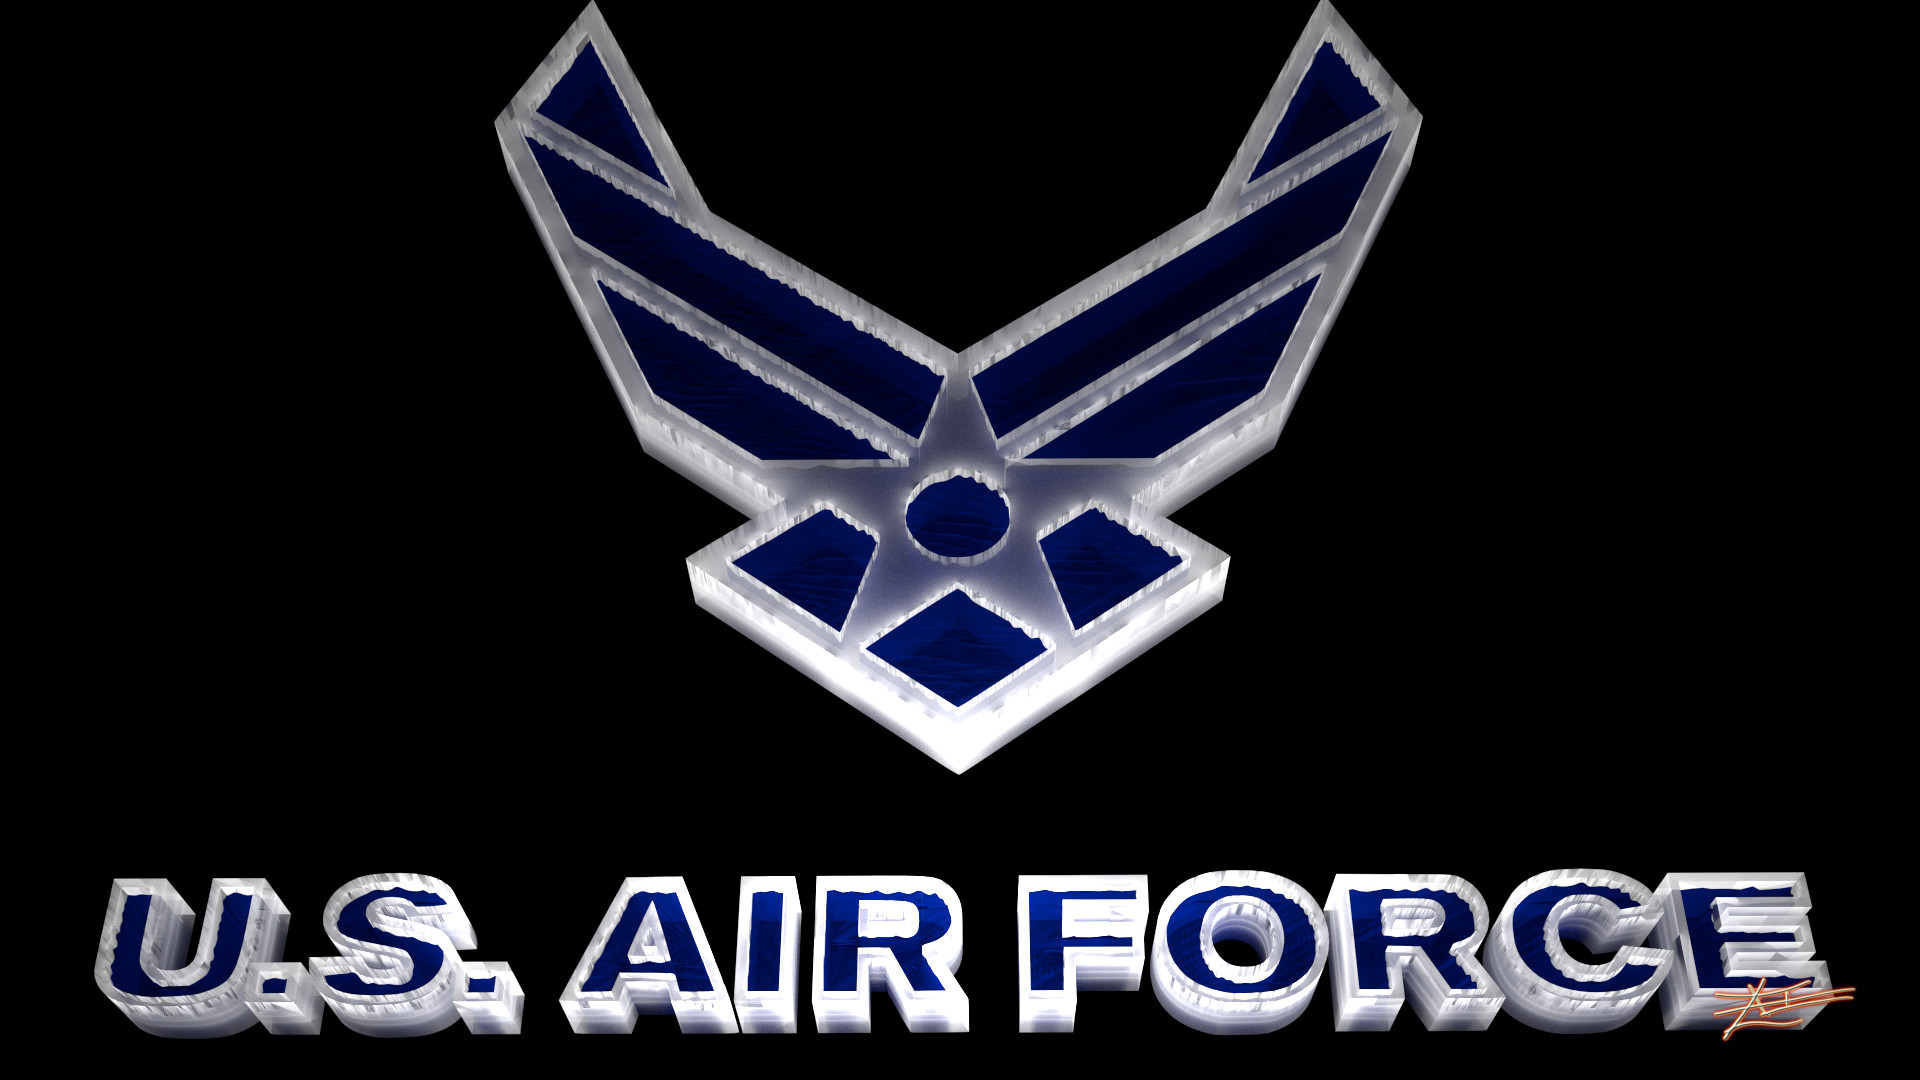 Res: 1920x1080, US Air Force Logo Wallpapers